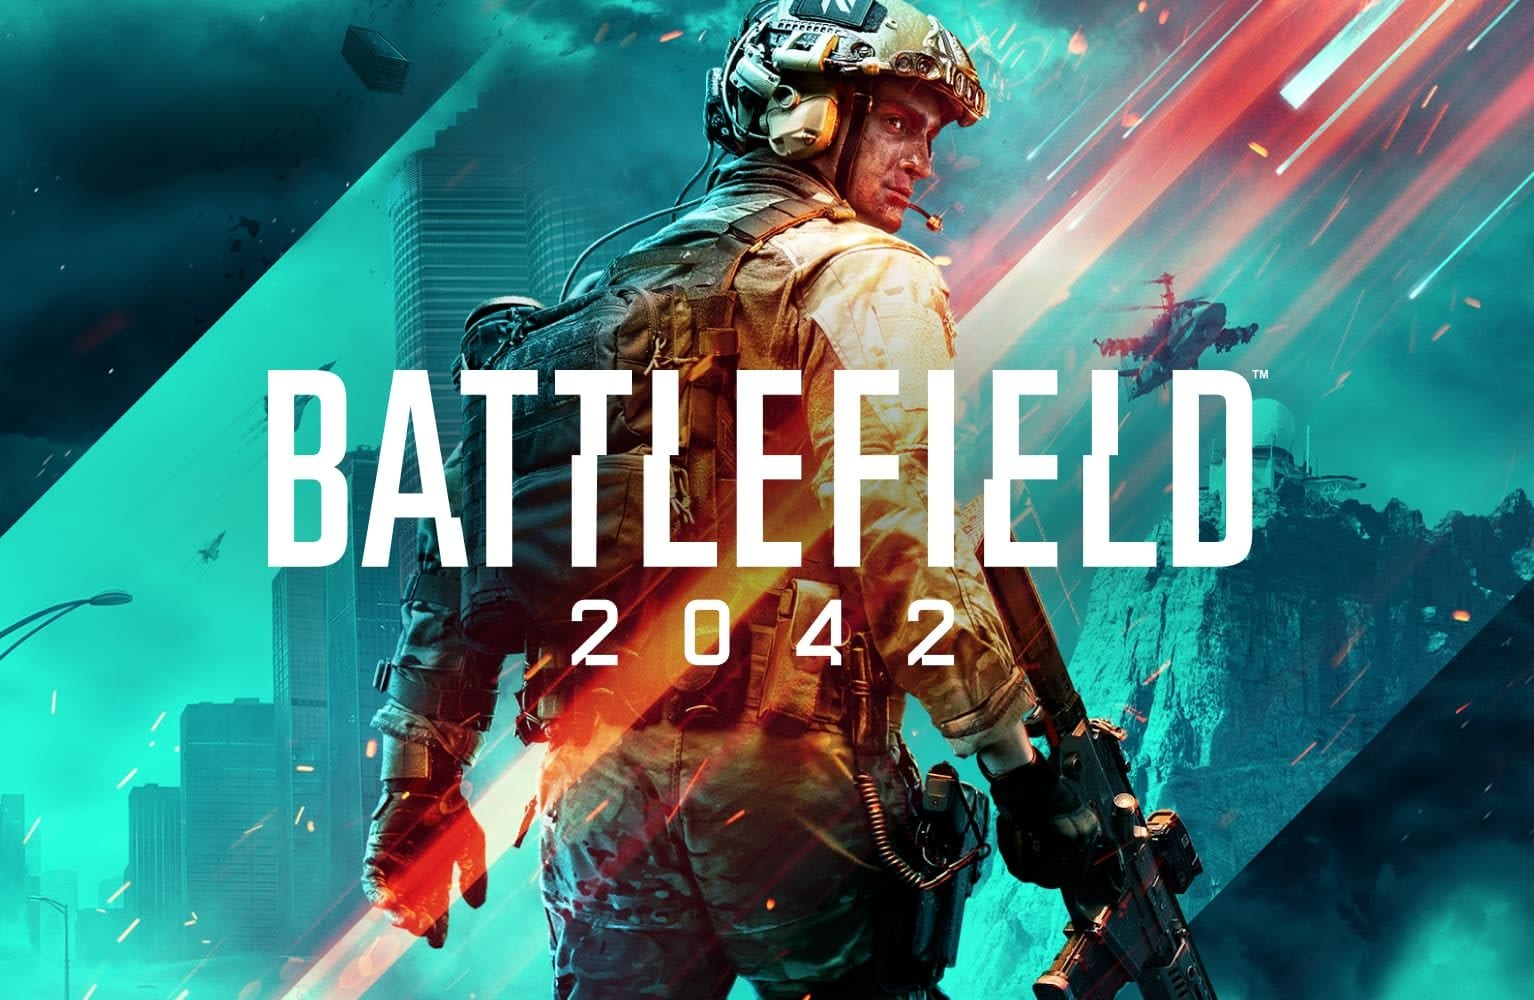 Battlefield 2042: Release Date, Trailer and Everything You Need to Know